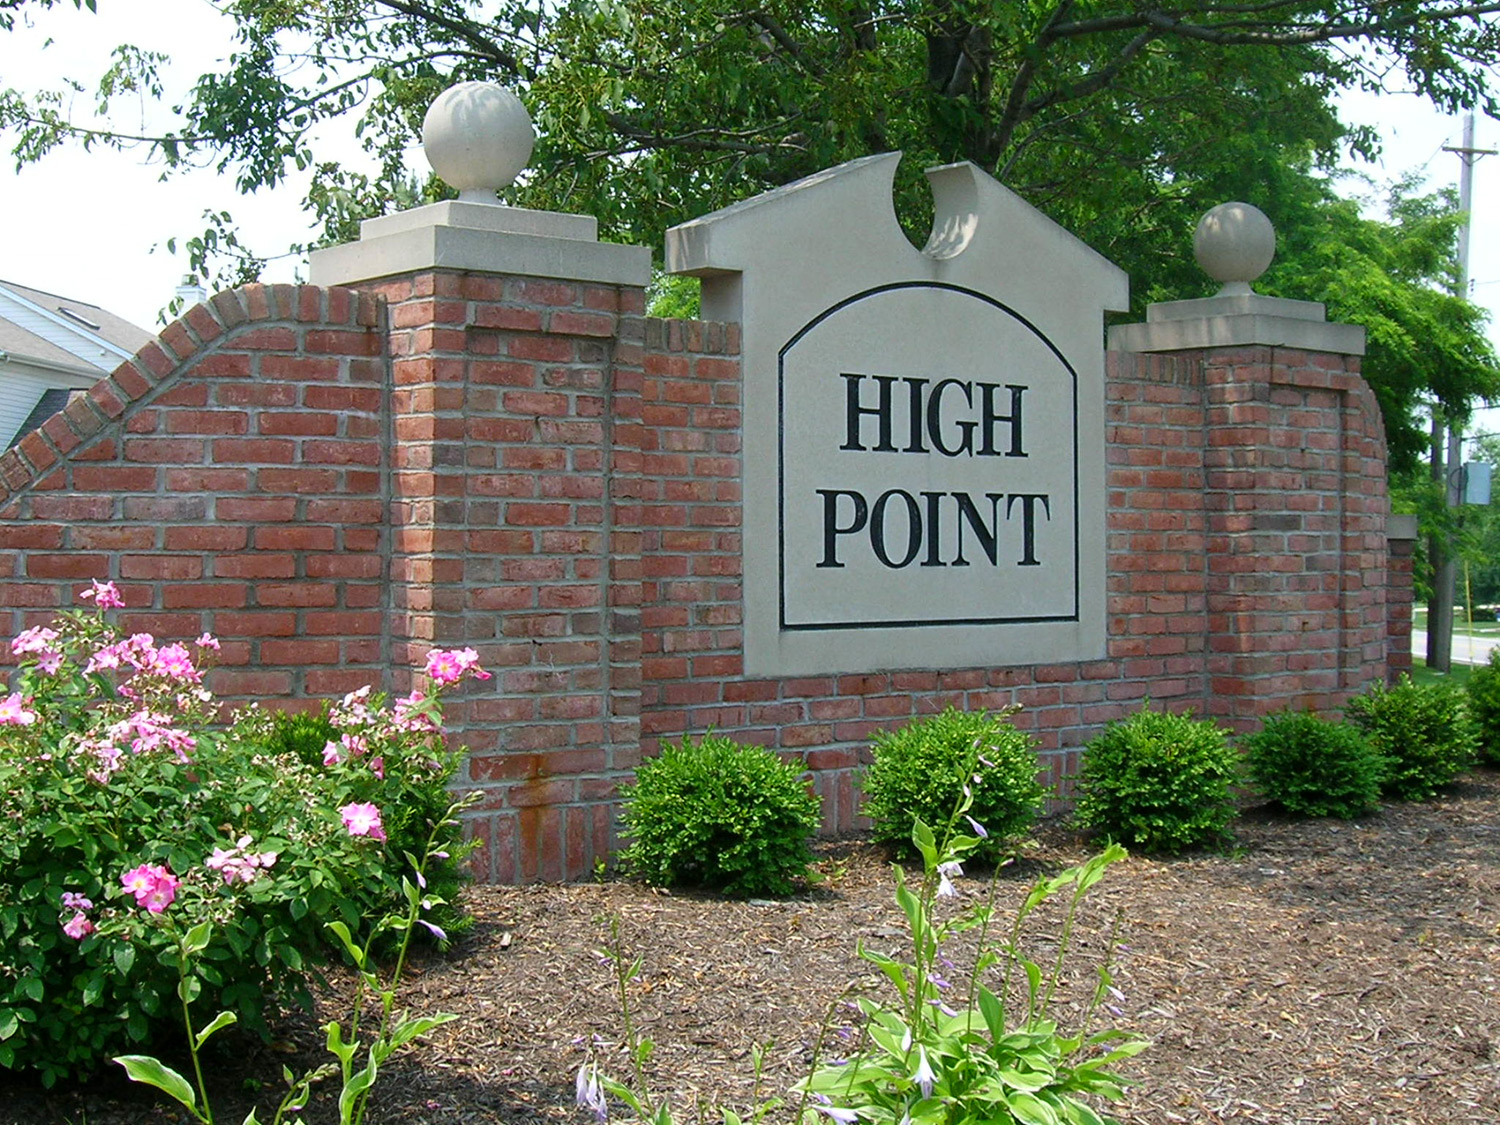 Brick and masonry entrance signs greet visitors entering the development.